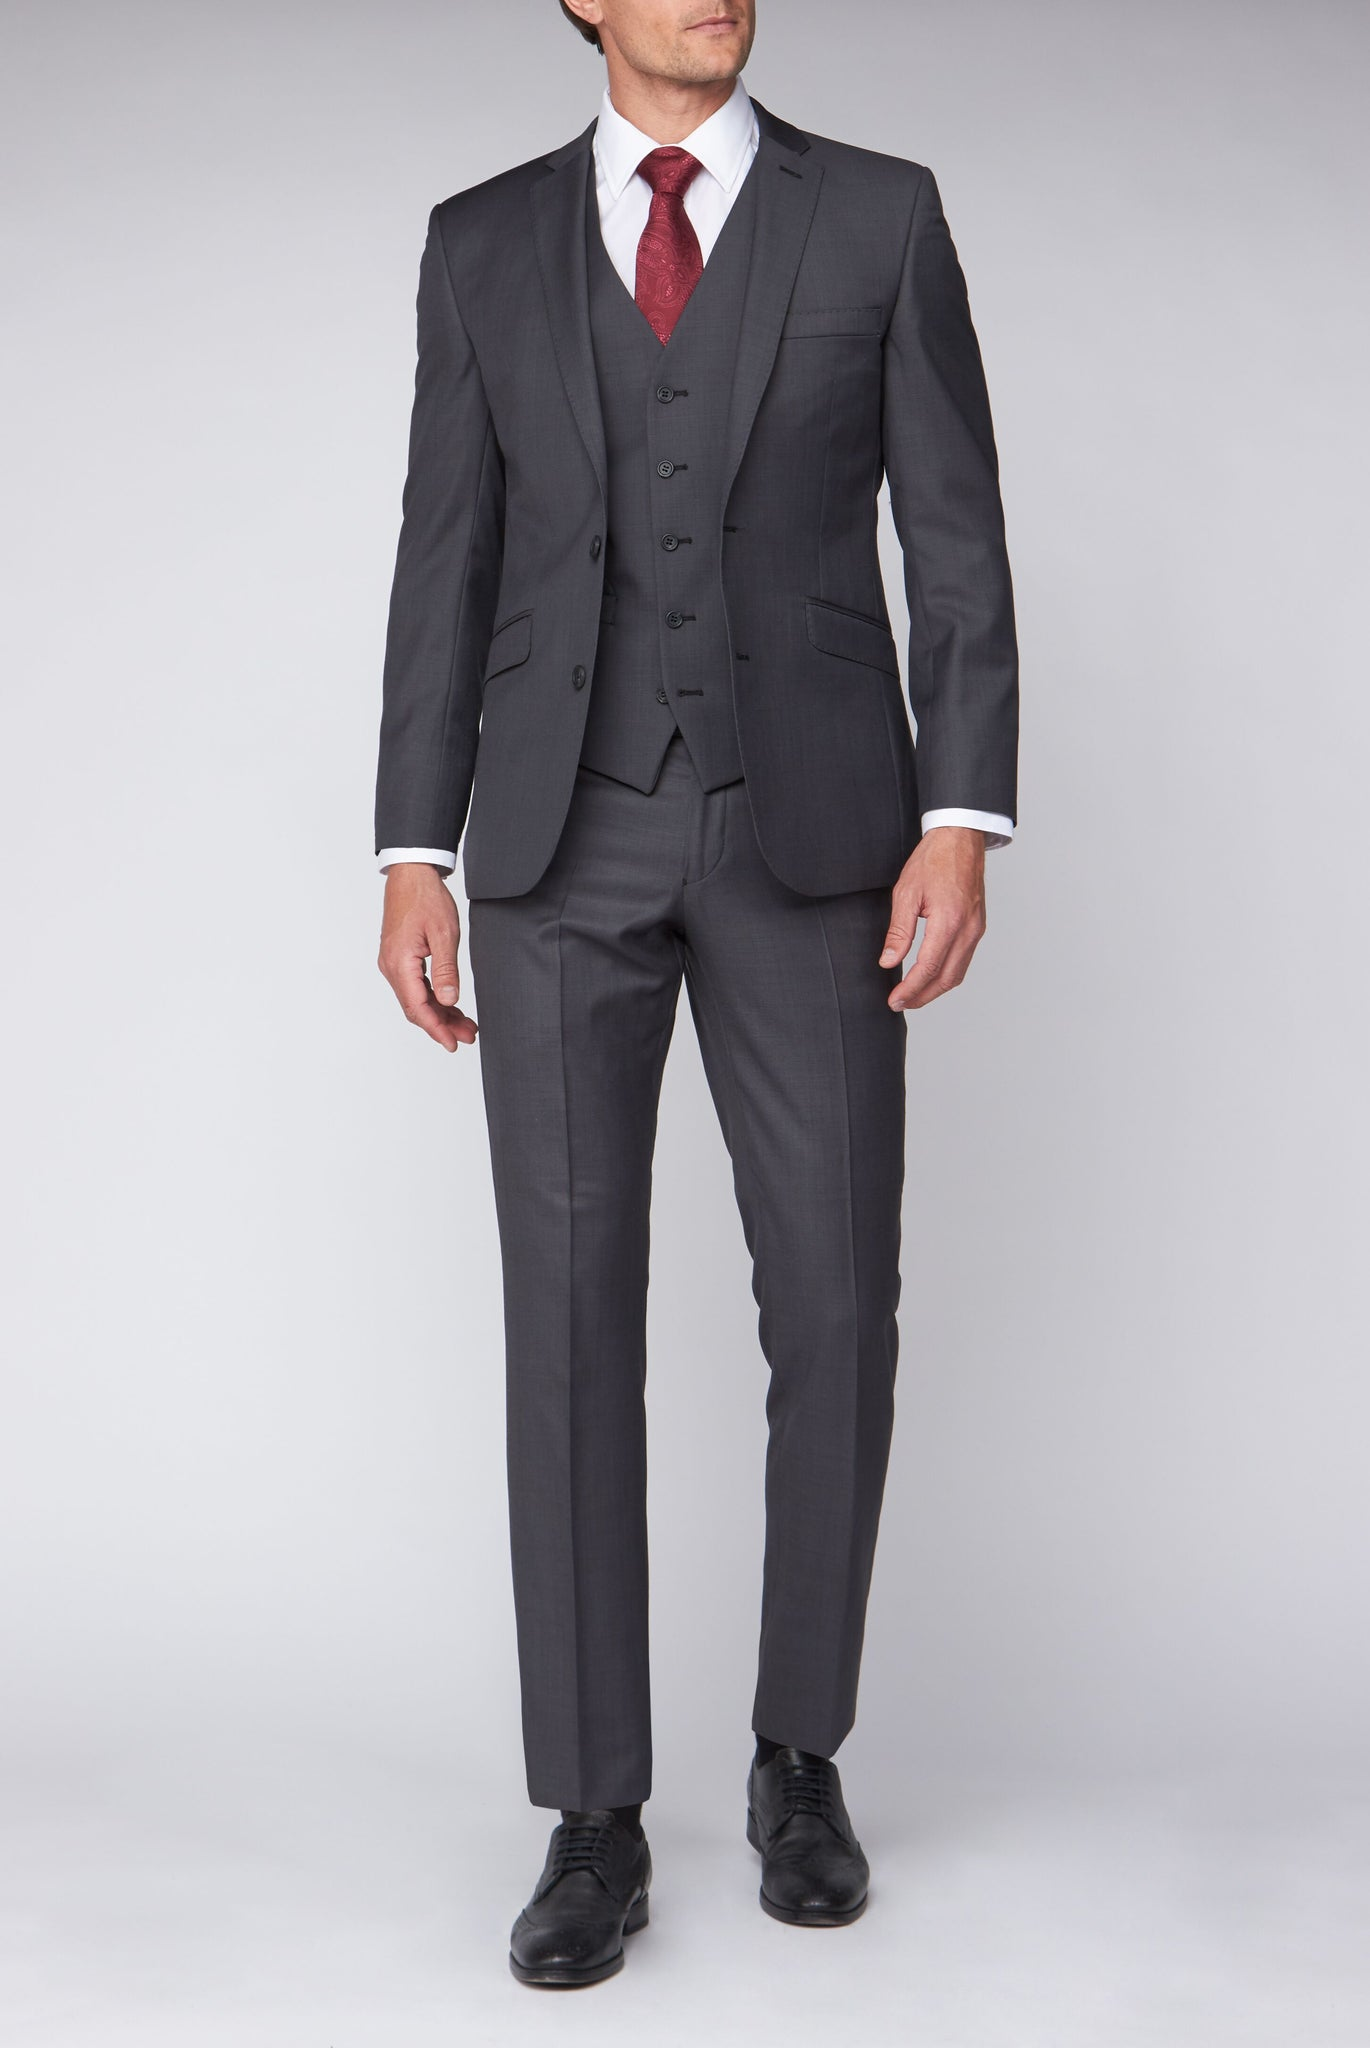 Mix & Match Grey Sharkskin full three piece suit